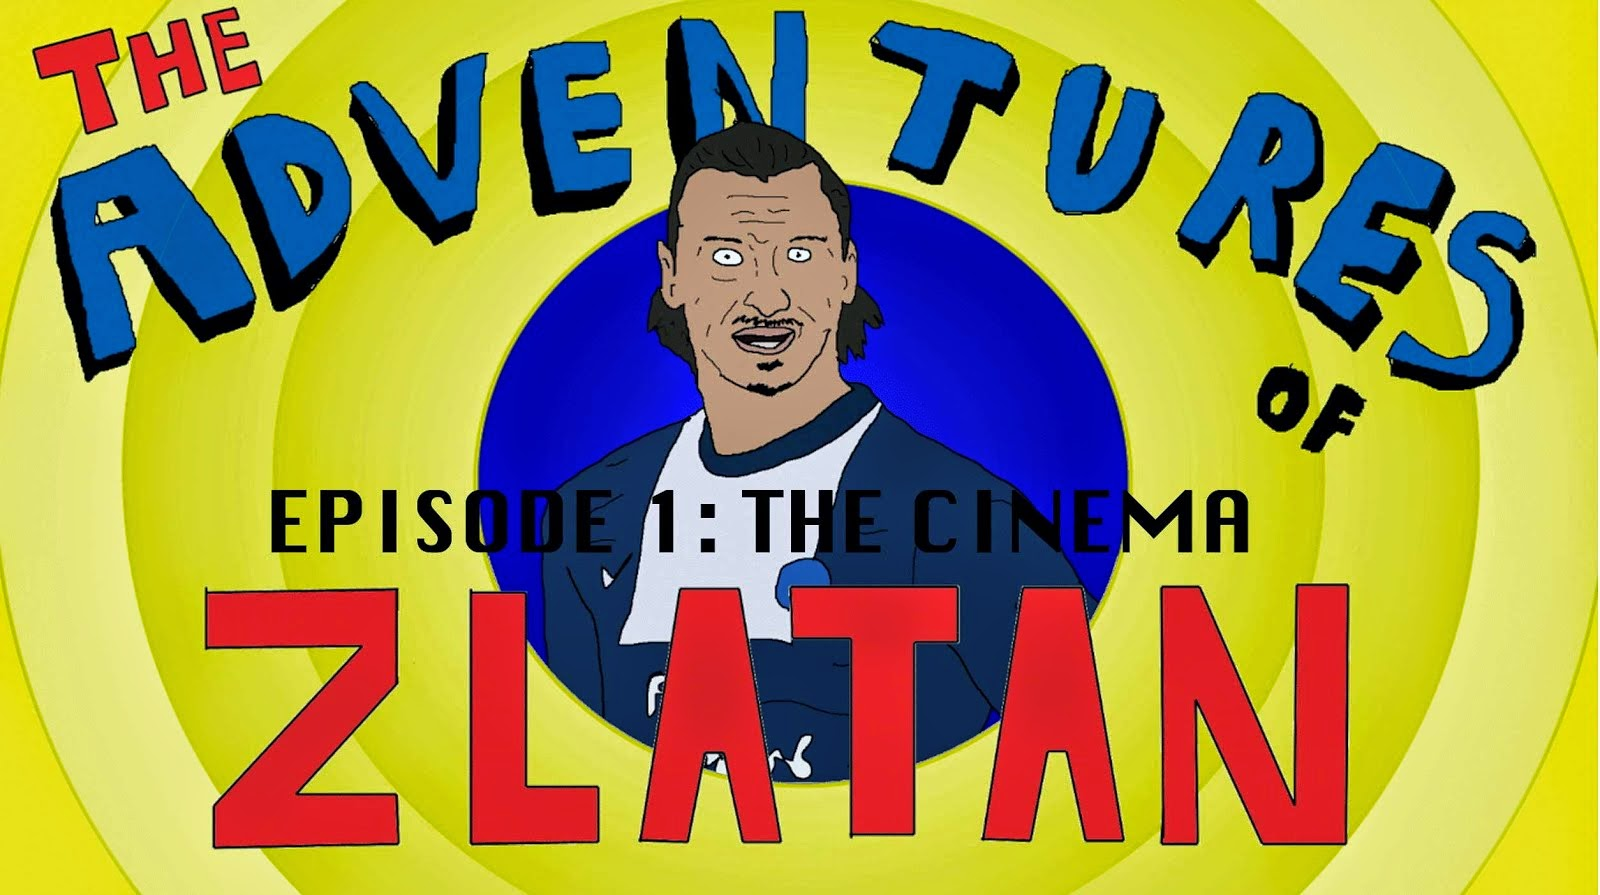 The Adventures of Zlatan